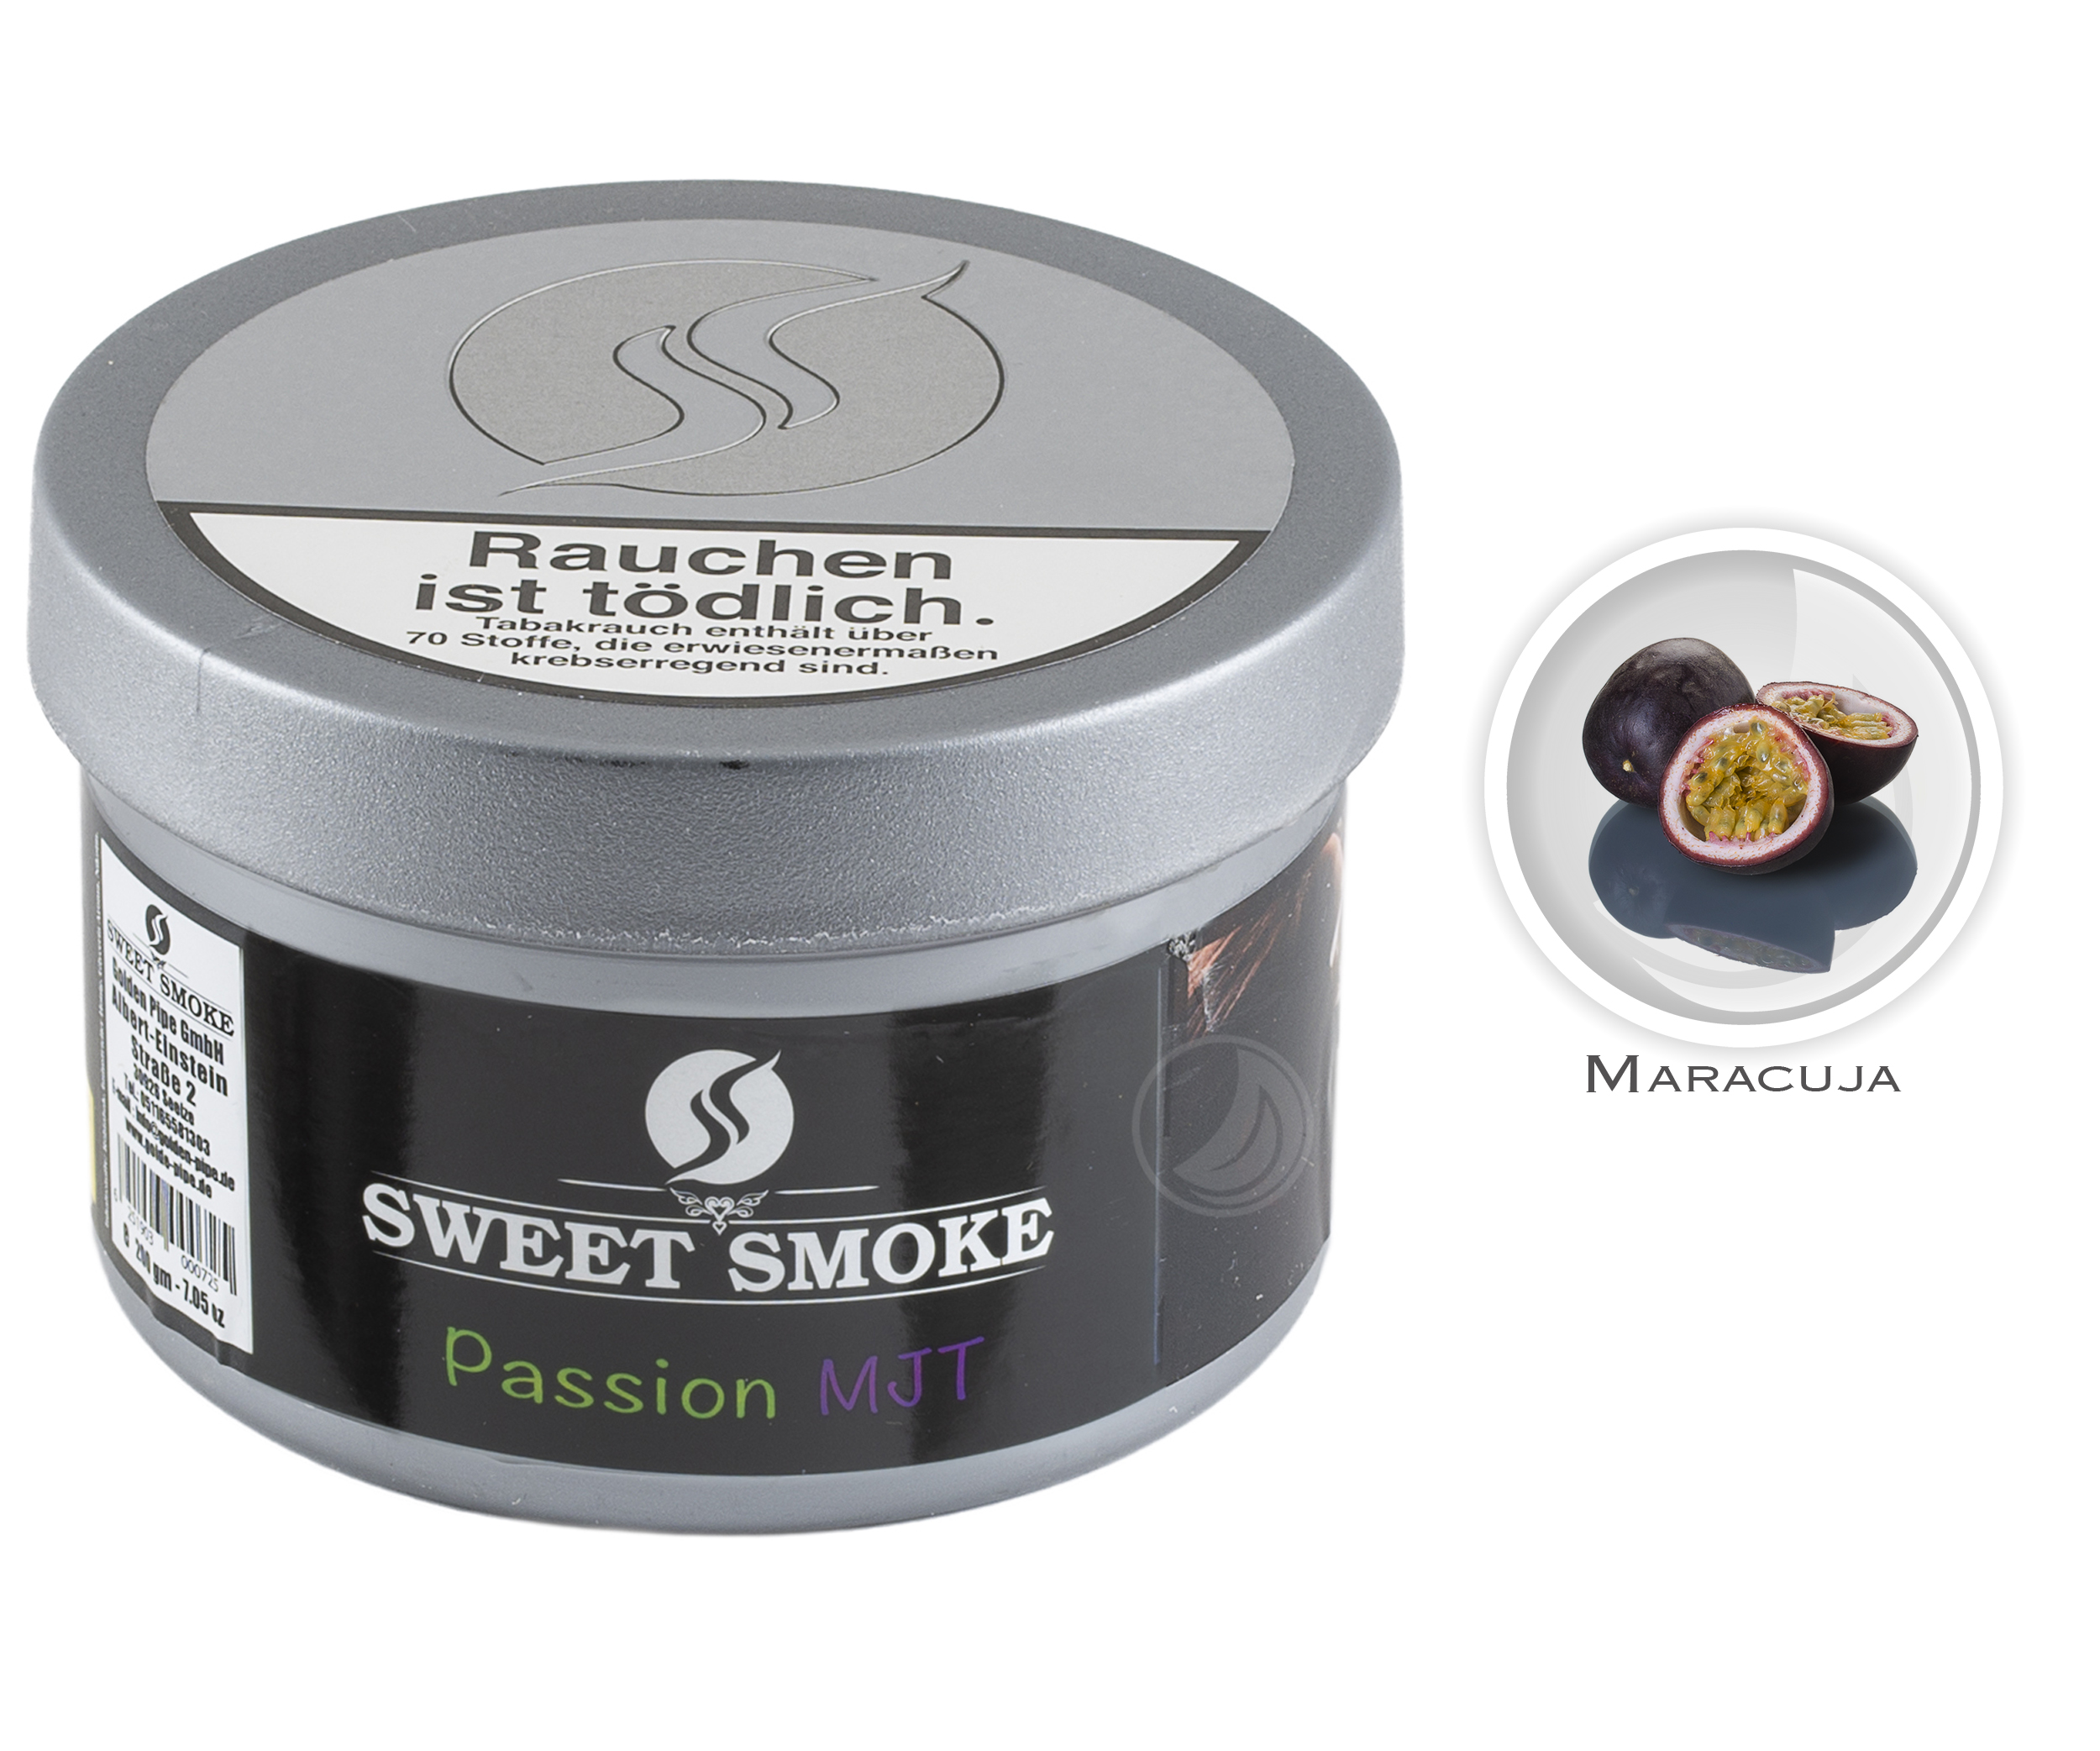 Sweet Smoke 200g - Passion MJT